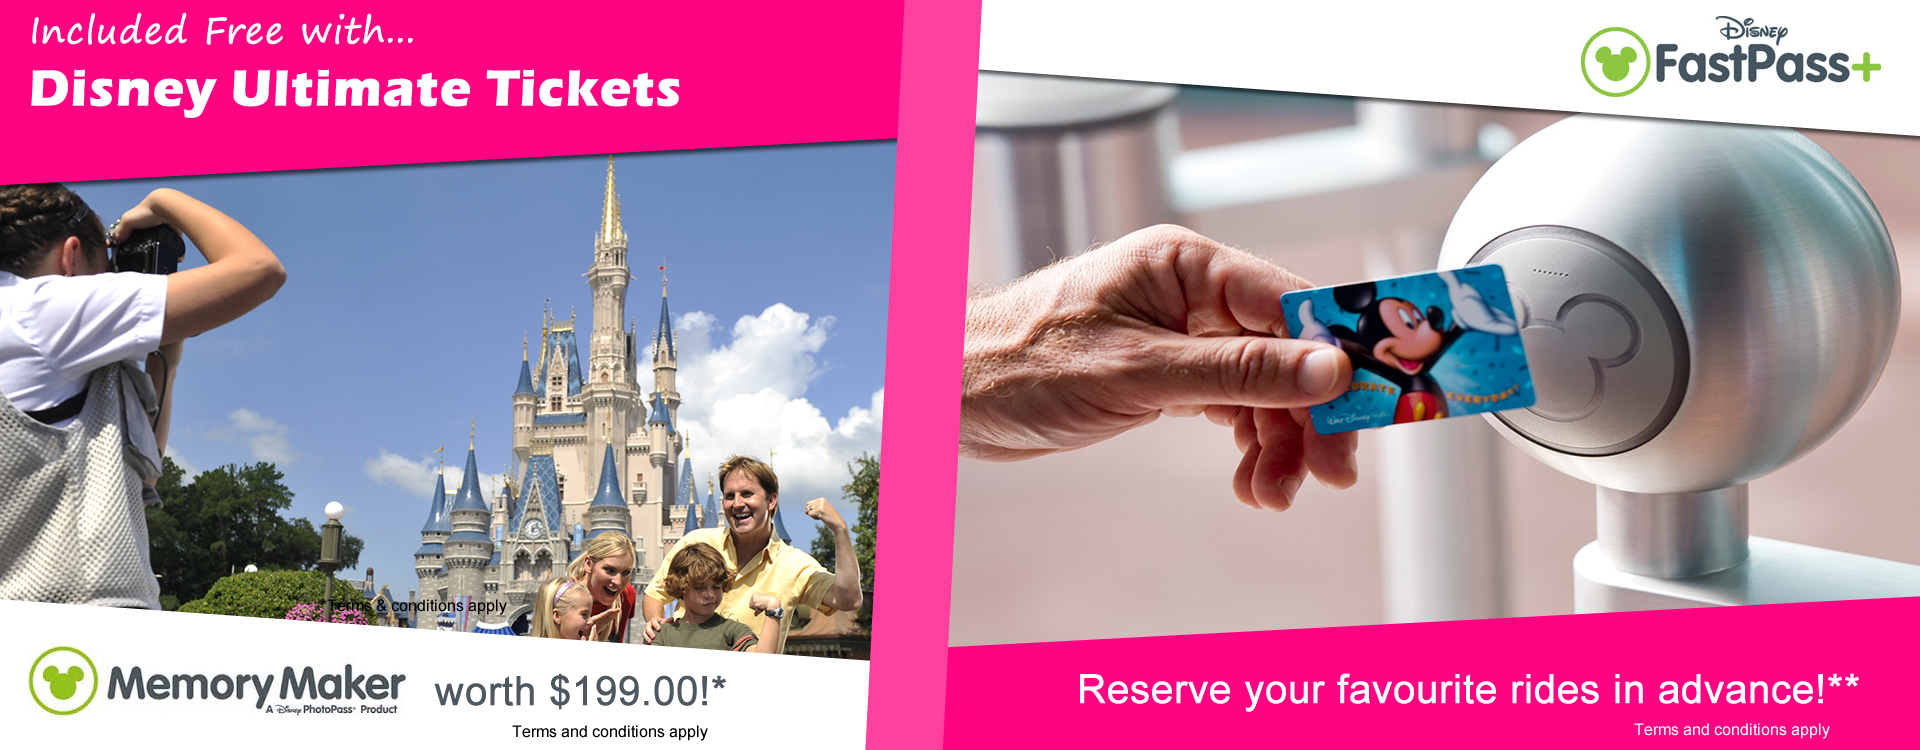 https://www.themeparktickets.co.uk/Ticket/Walt-Disney-World-Resort--14-Day-Ultimate-Ticket